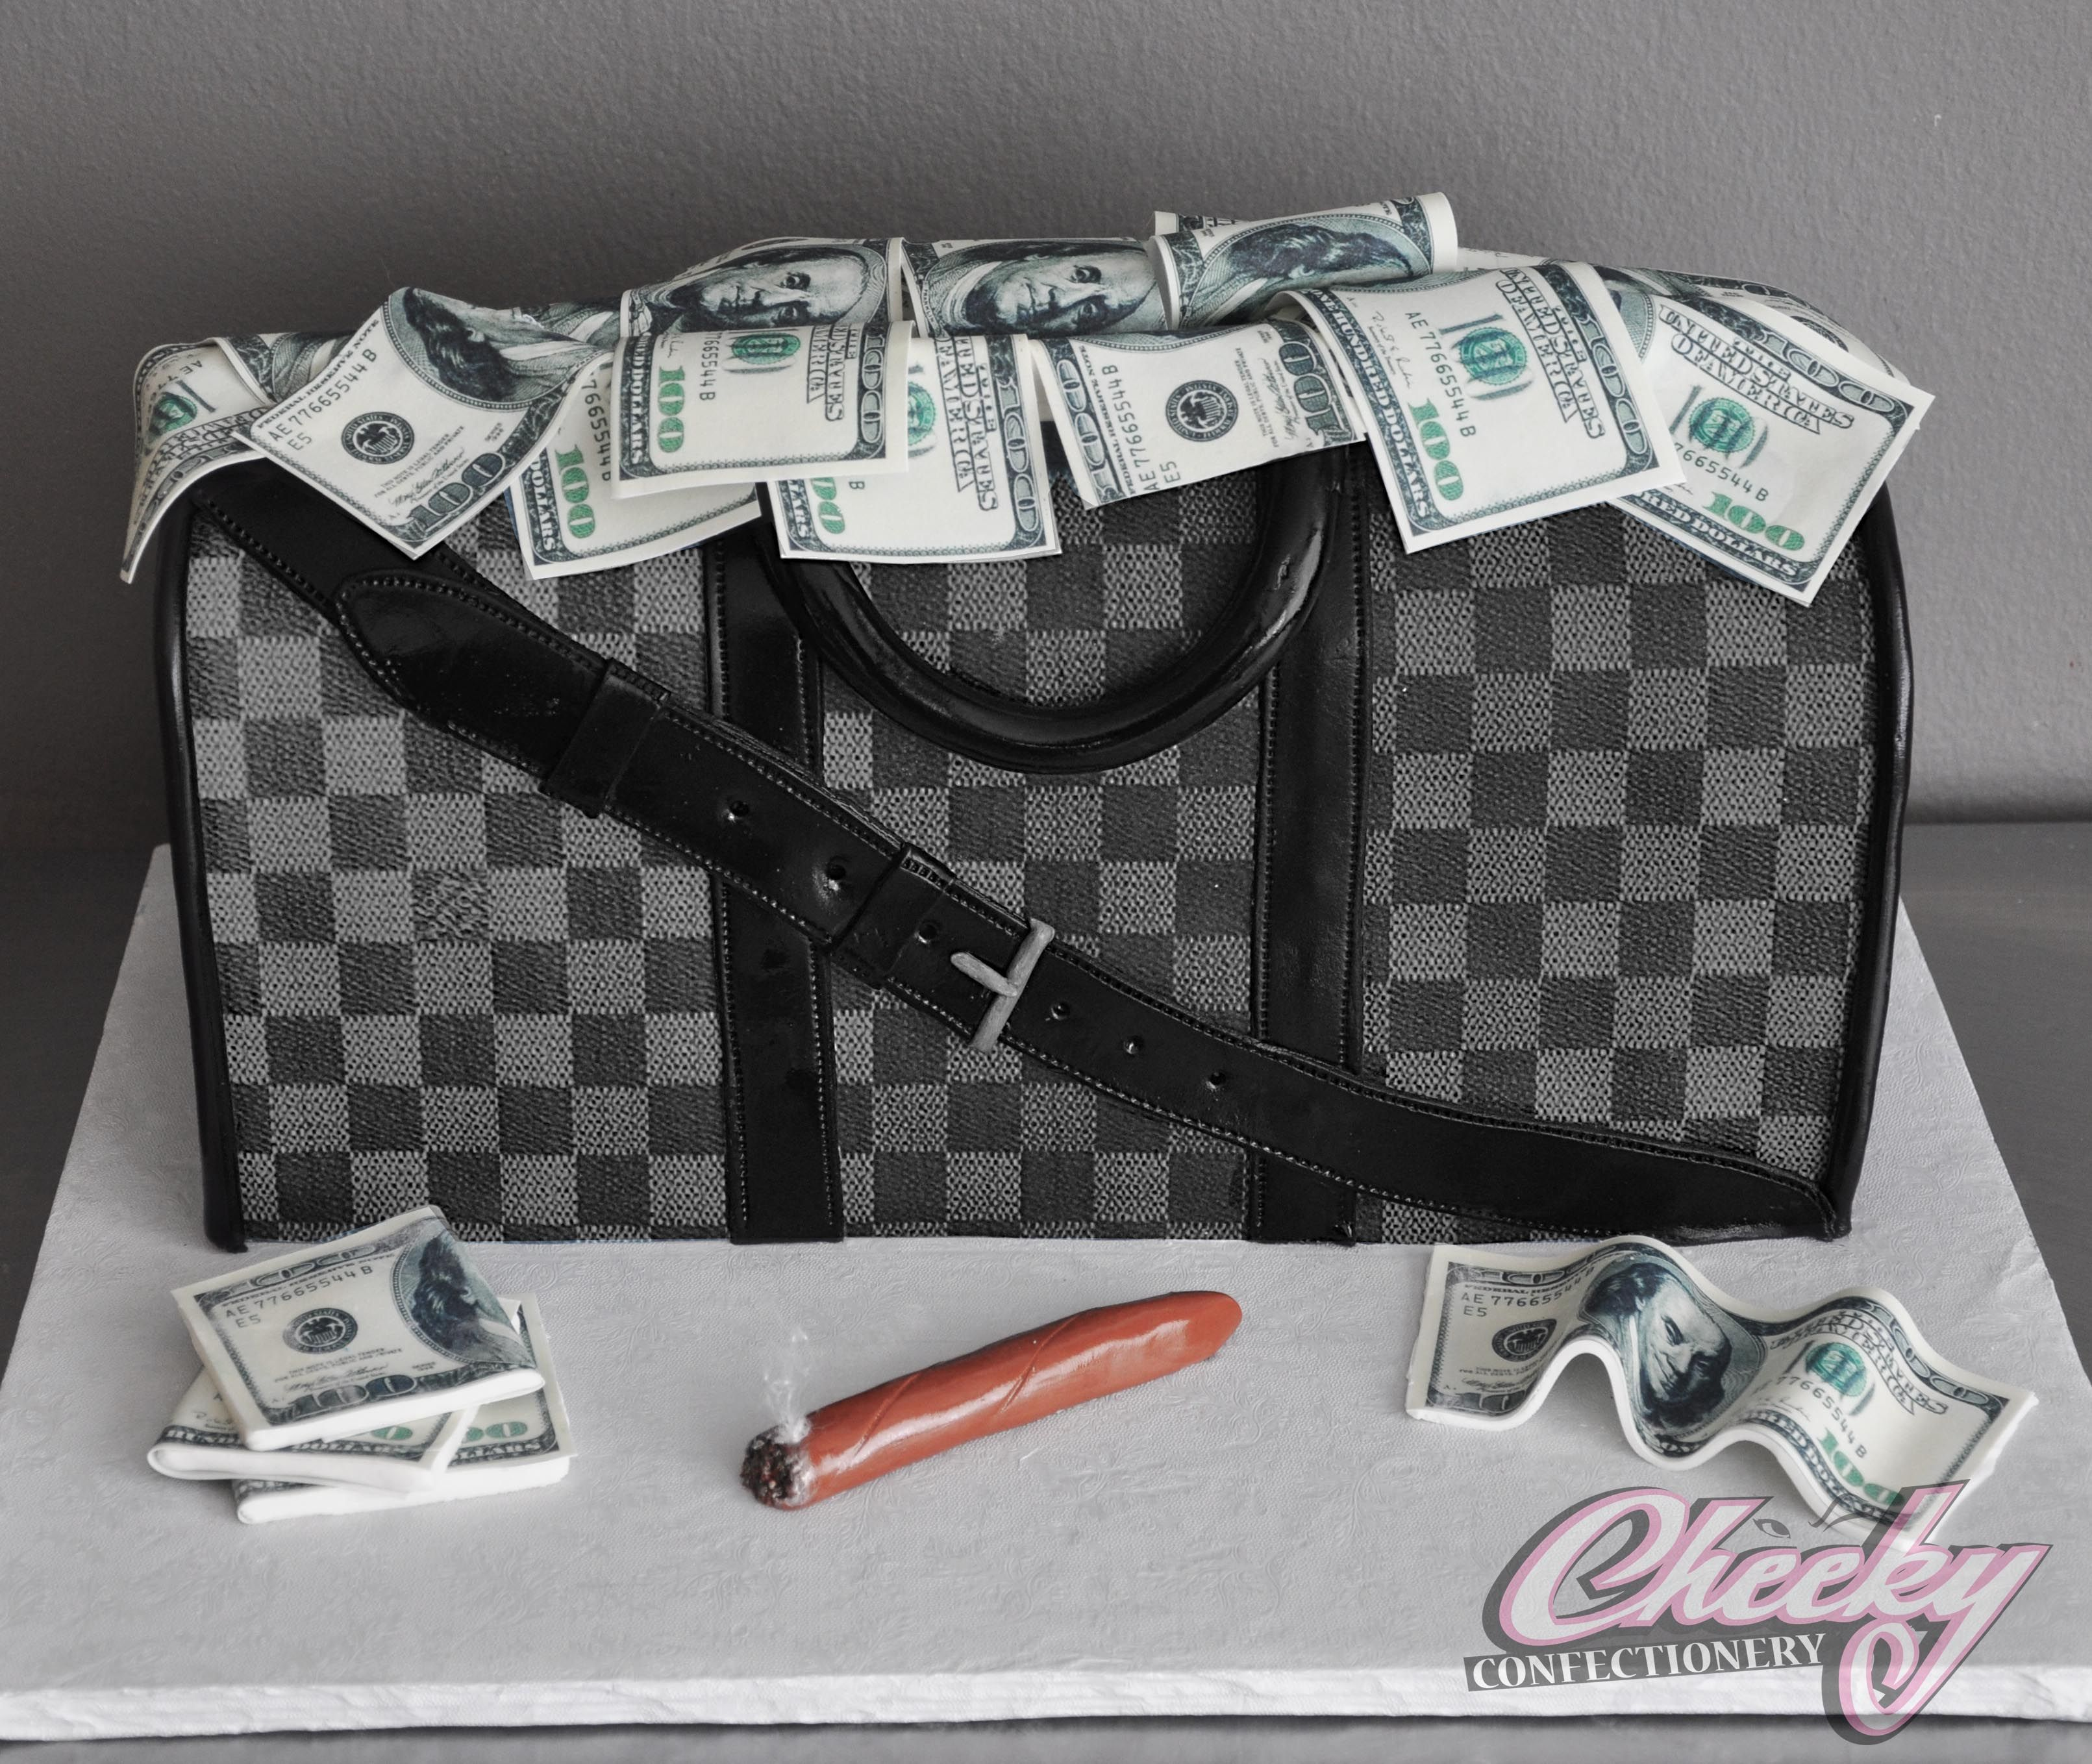 Louis Vuitton Cake By Cheeky Confectionery Nyc Amazing Work